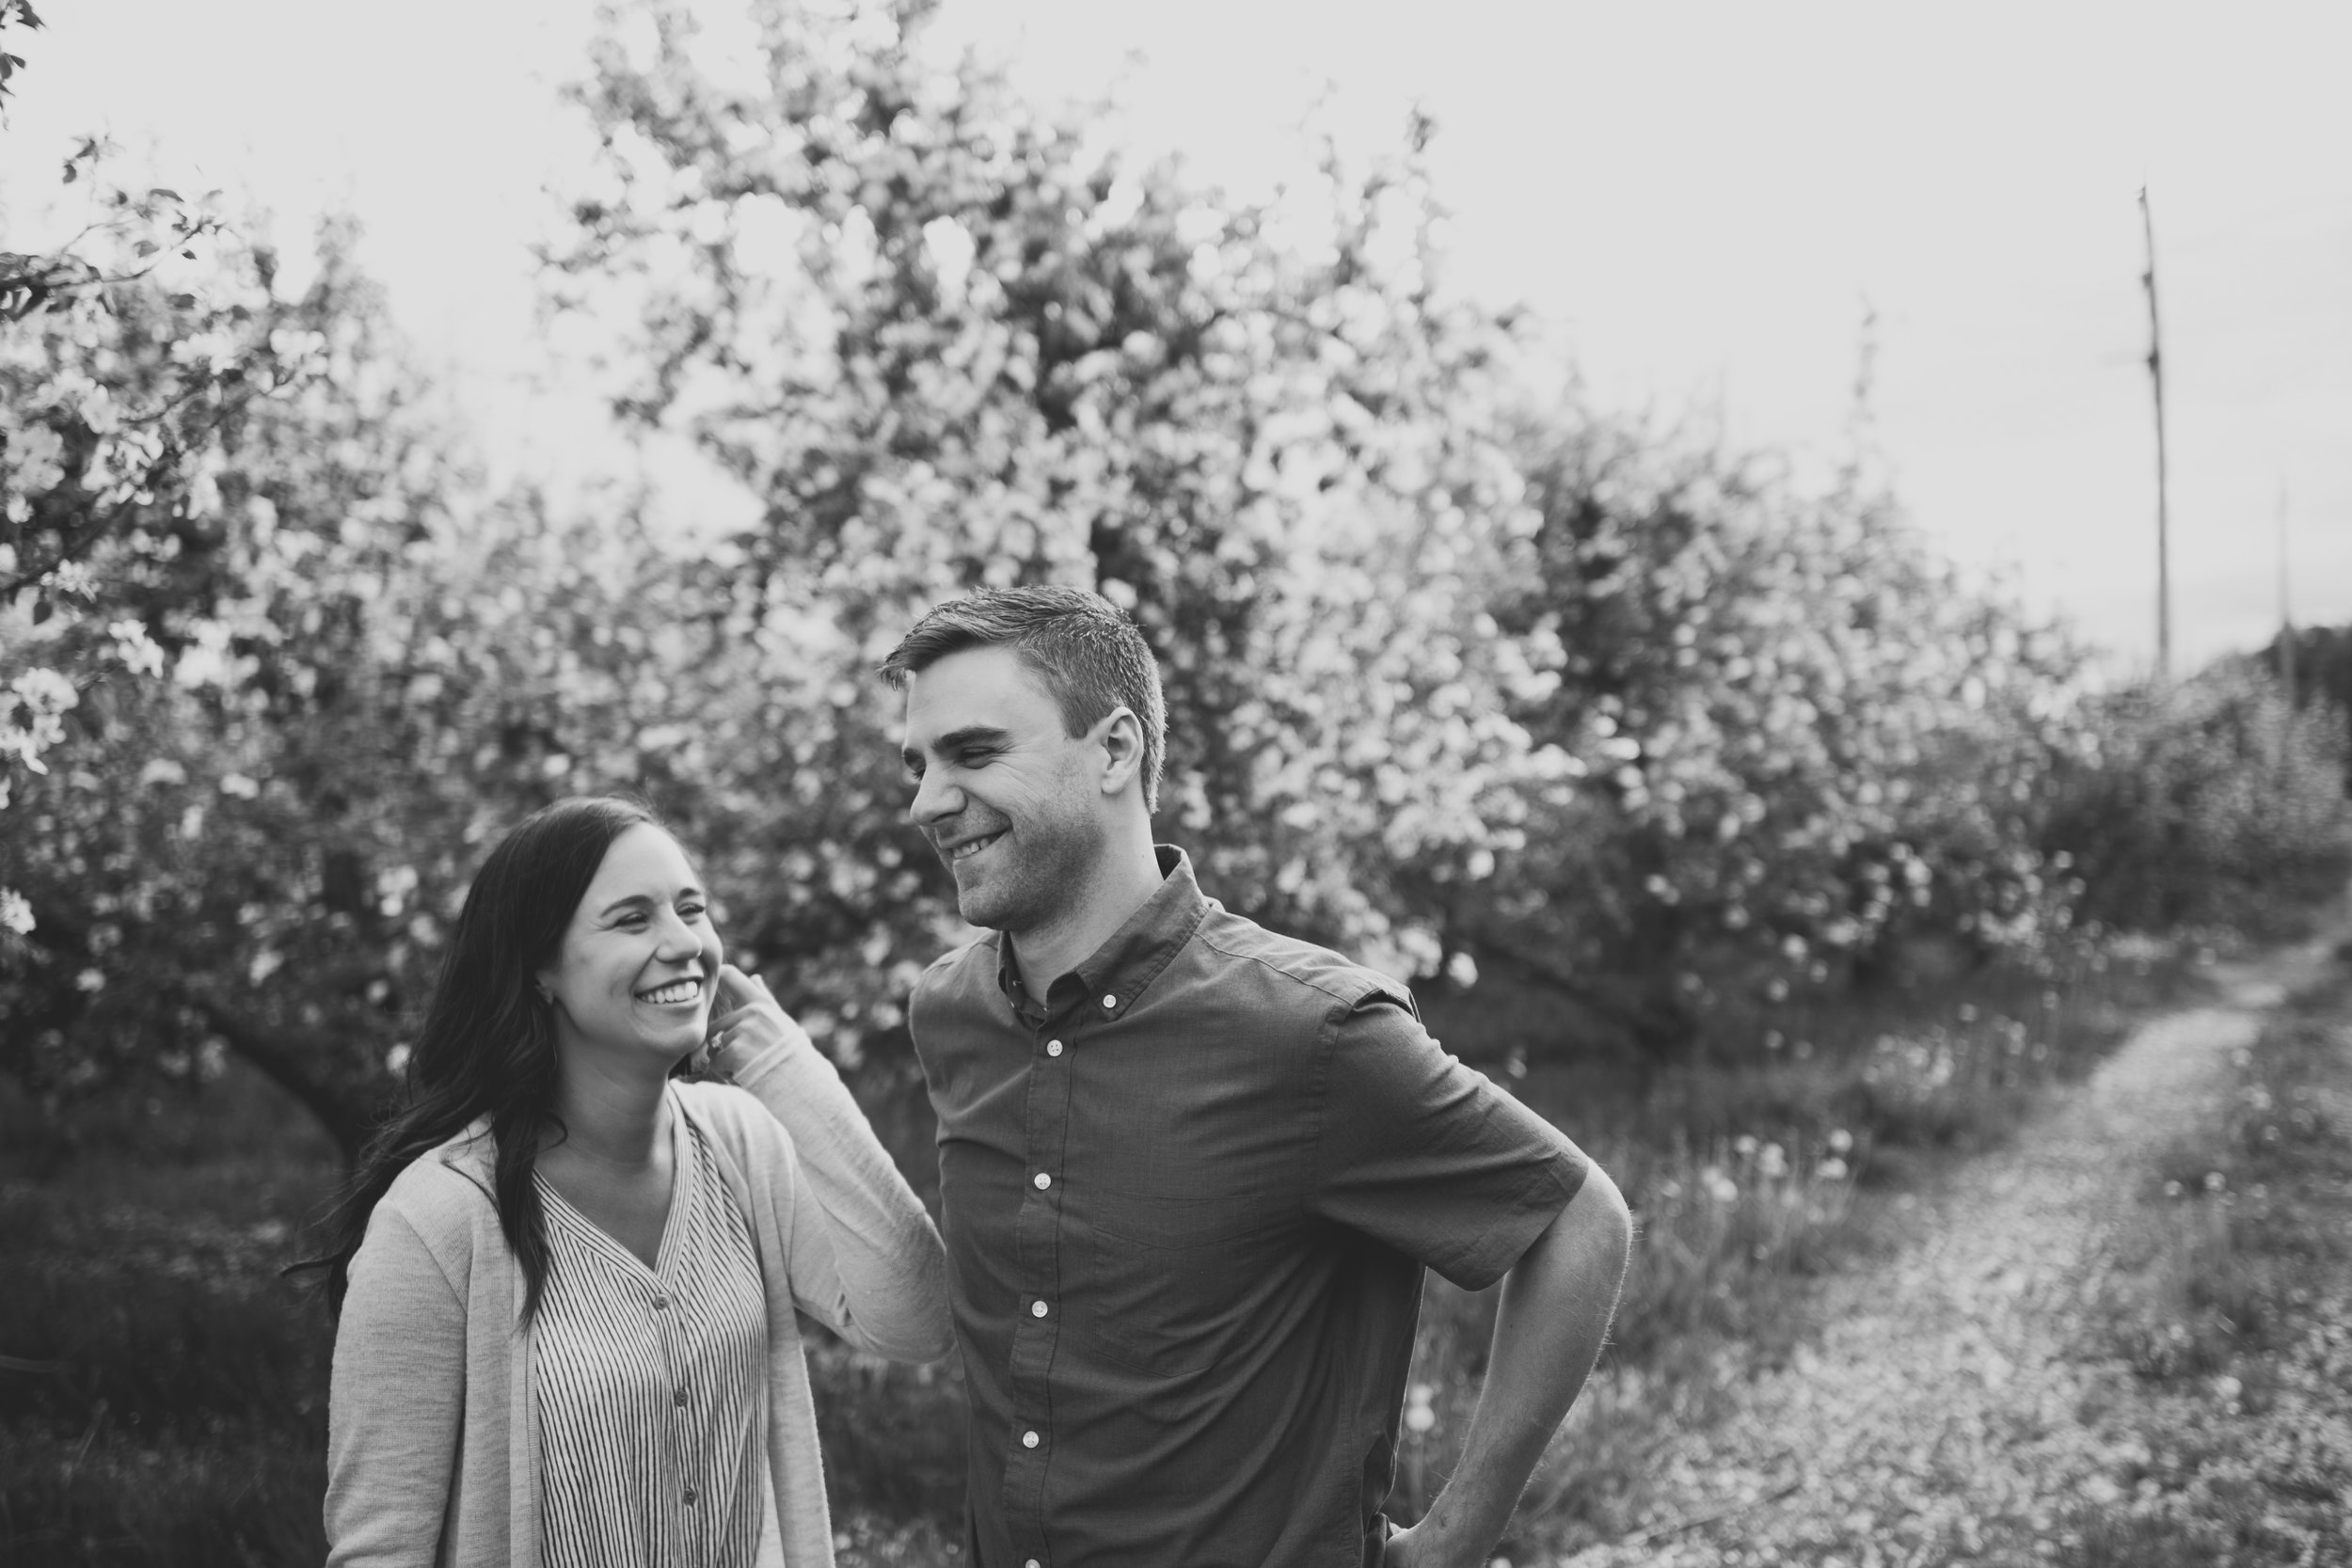 Grand Rapids Photographer - grand rapids wedding photographer - brian and katie engaged - apple blossoms - engagement session - jessica darling - sparta michigan - michigan wedding photographer- J Darling Photo005.jpg